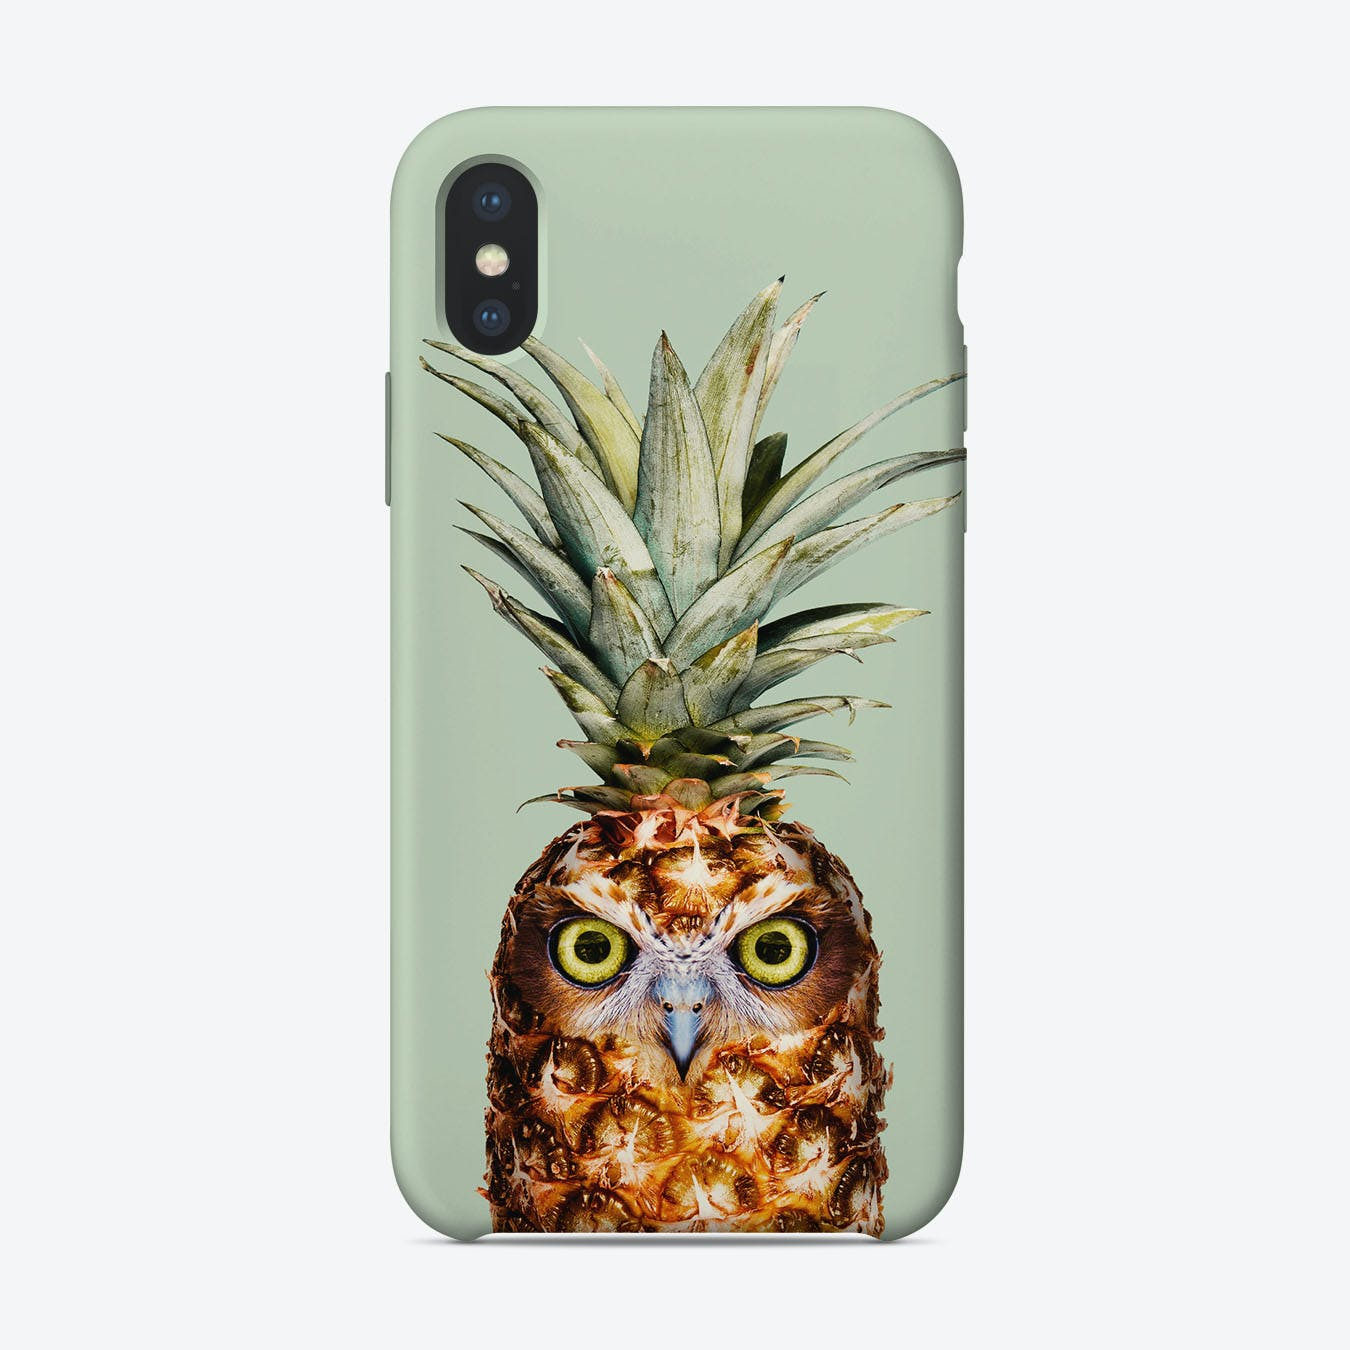 Pineapple Owl iPhone Case